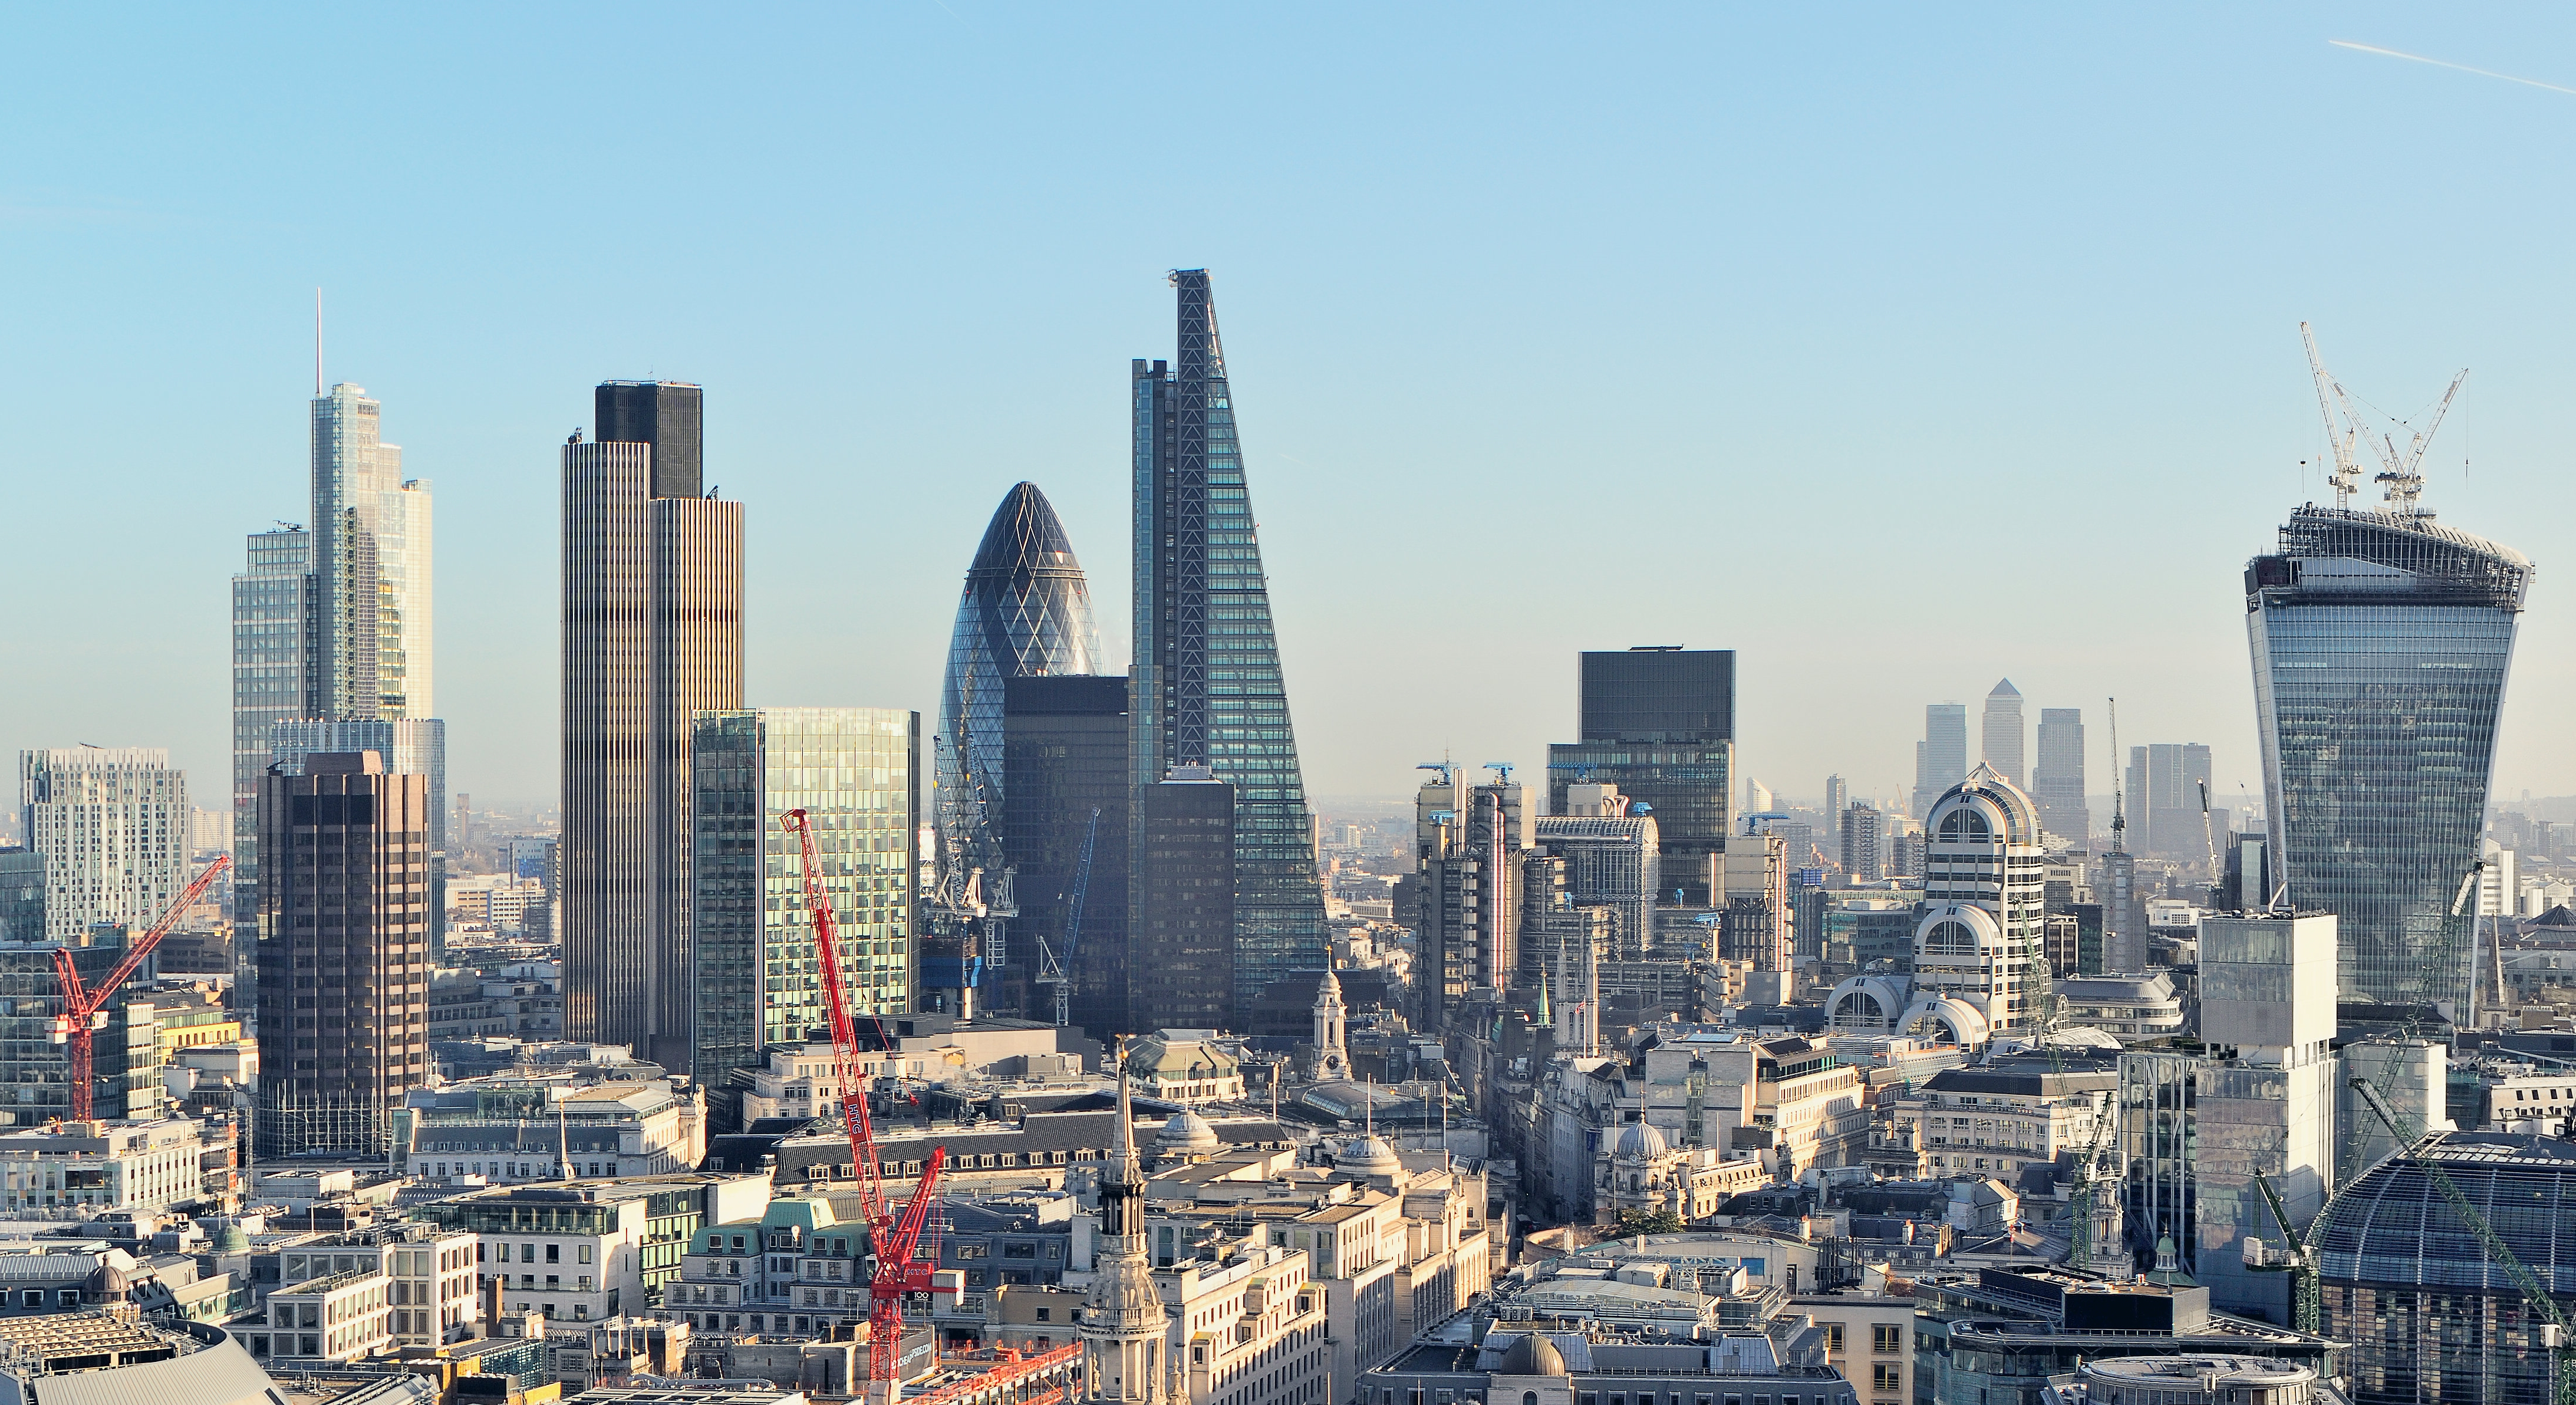 London Building An Anti-Terror 'Ring Of Steel' To Protect The City's Skyscrapers Featured